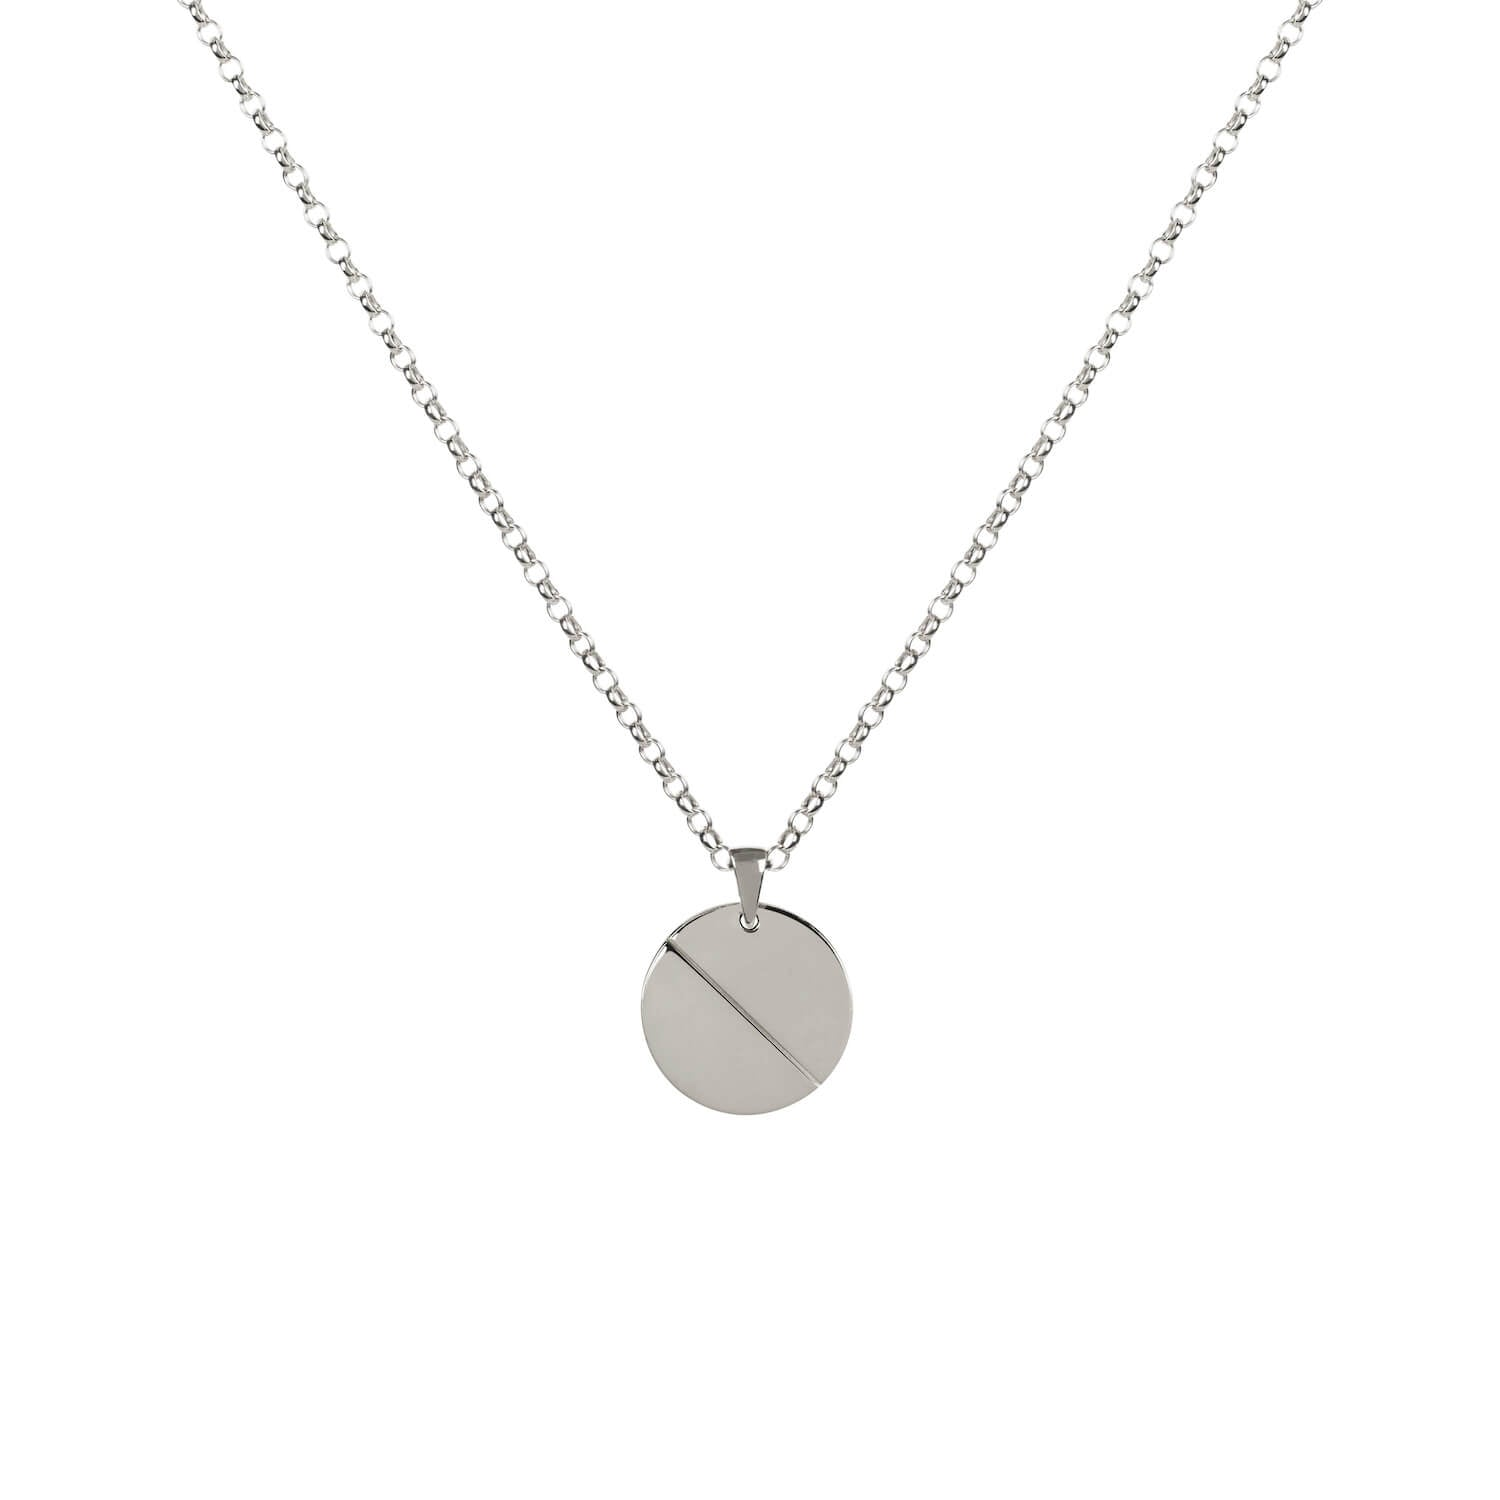 Union Dual Necklace - Silver